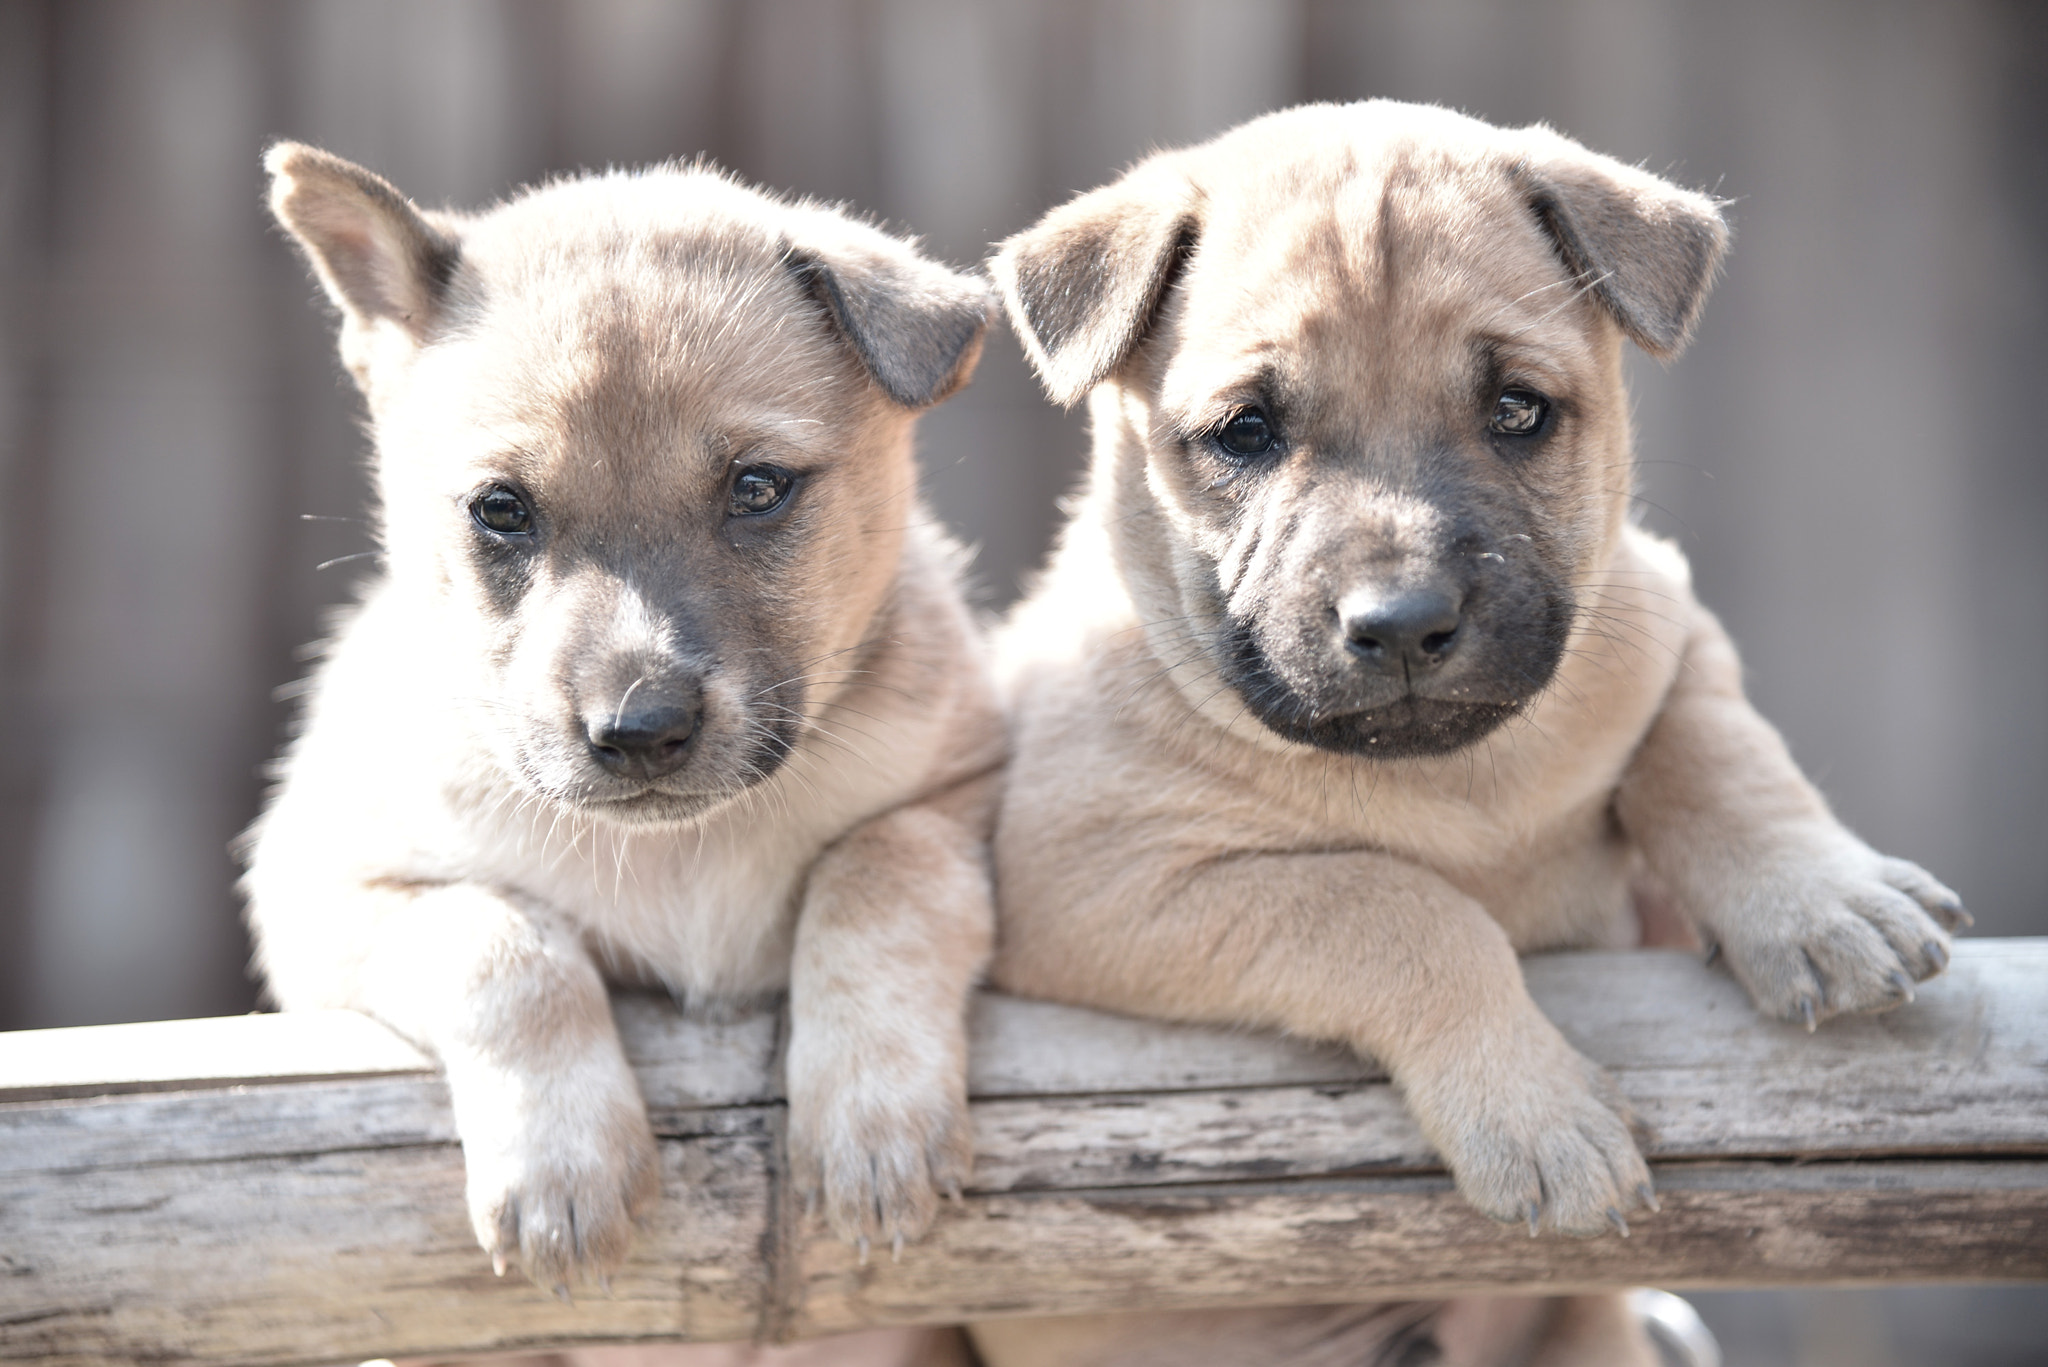 Photograph The two puppy by Anuwat L on 500px